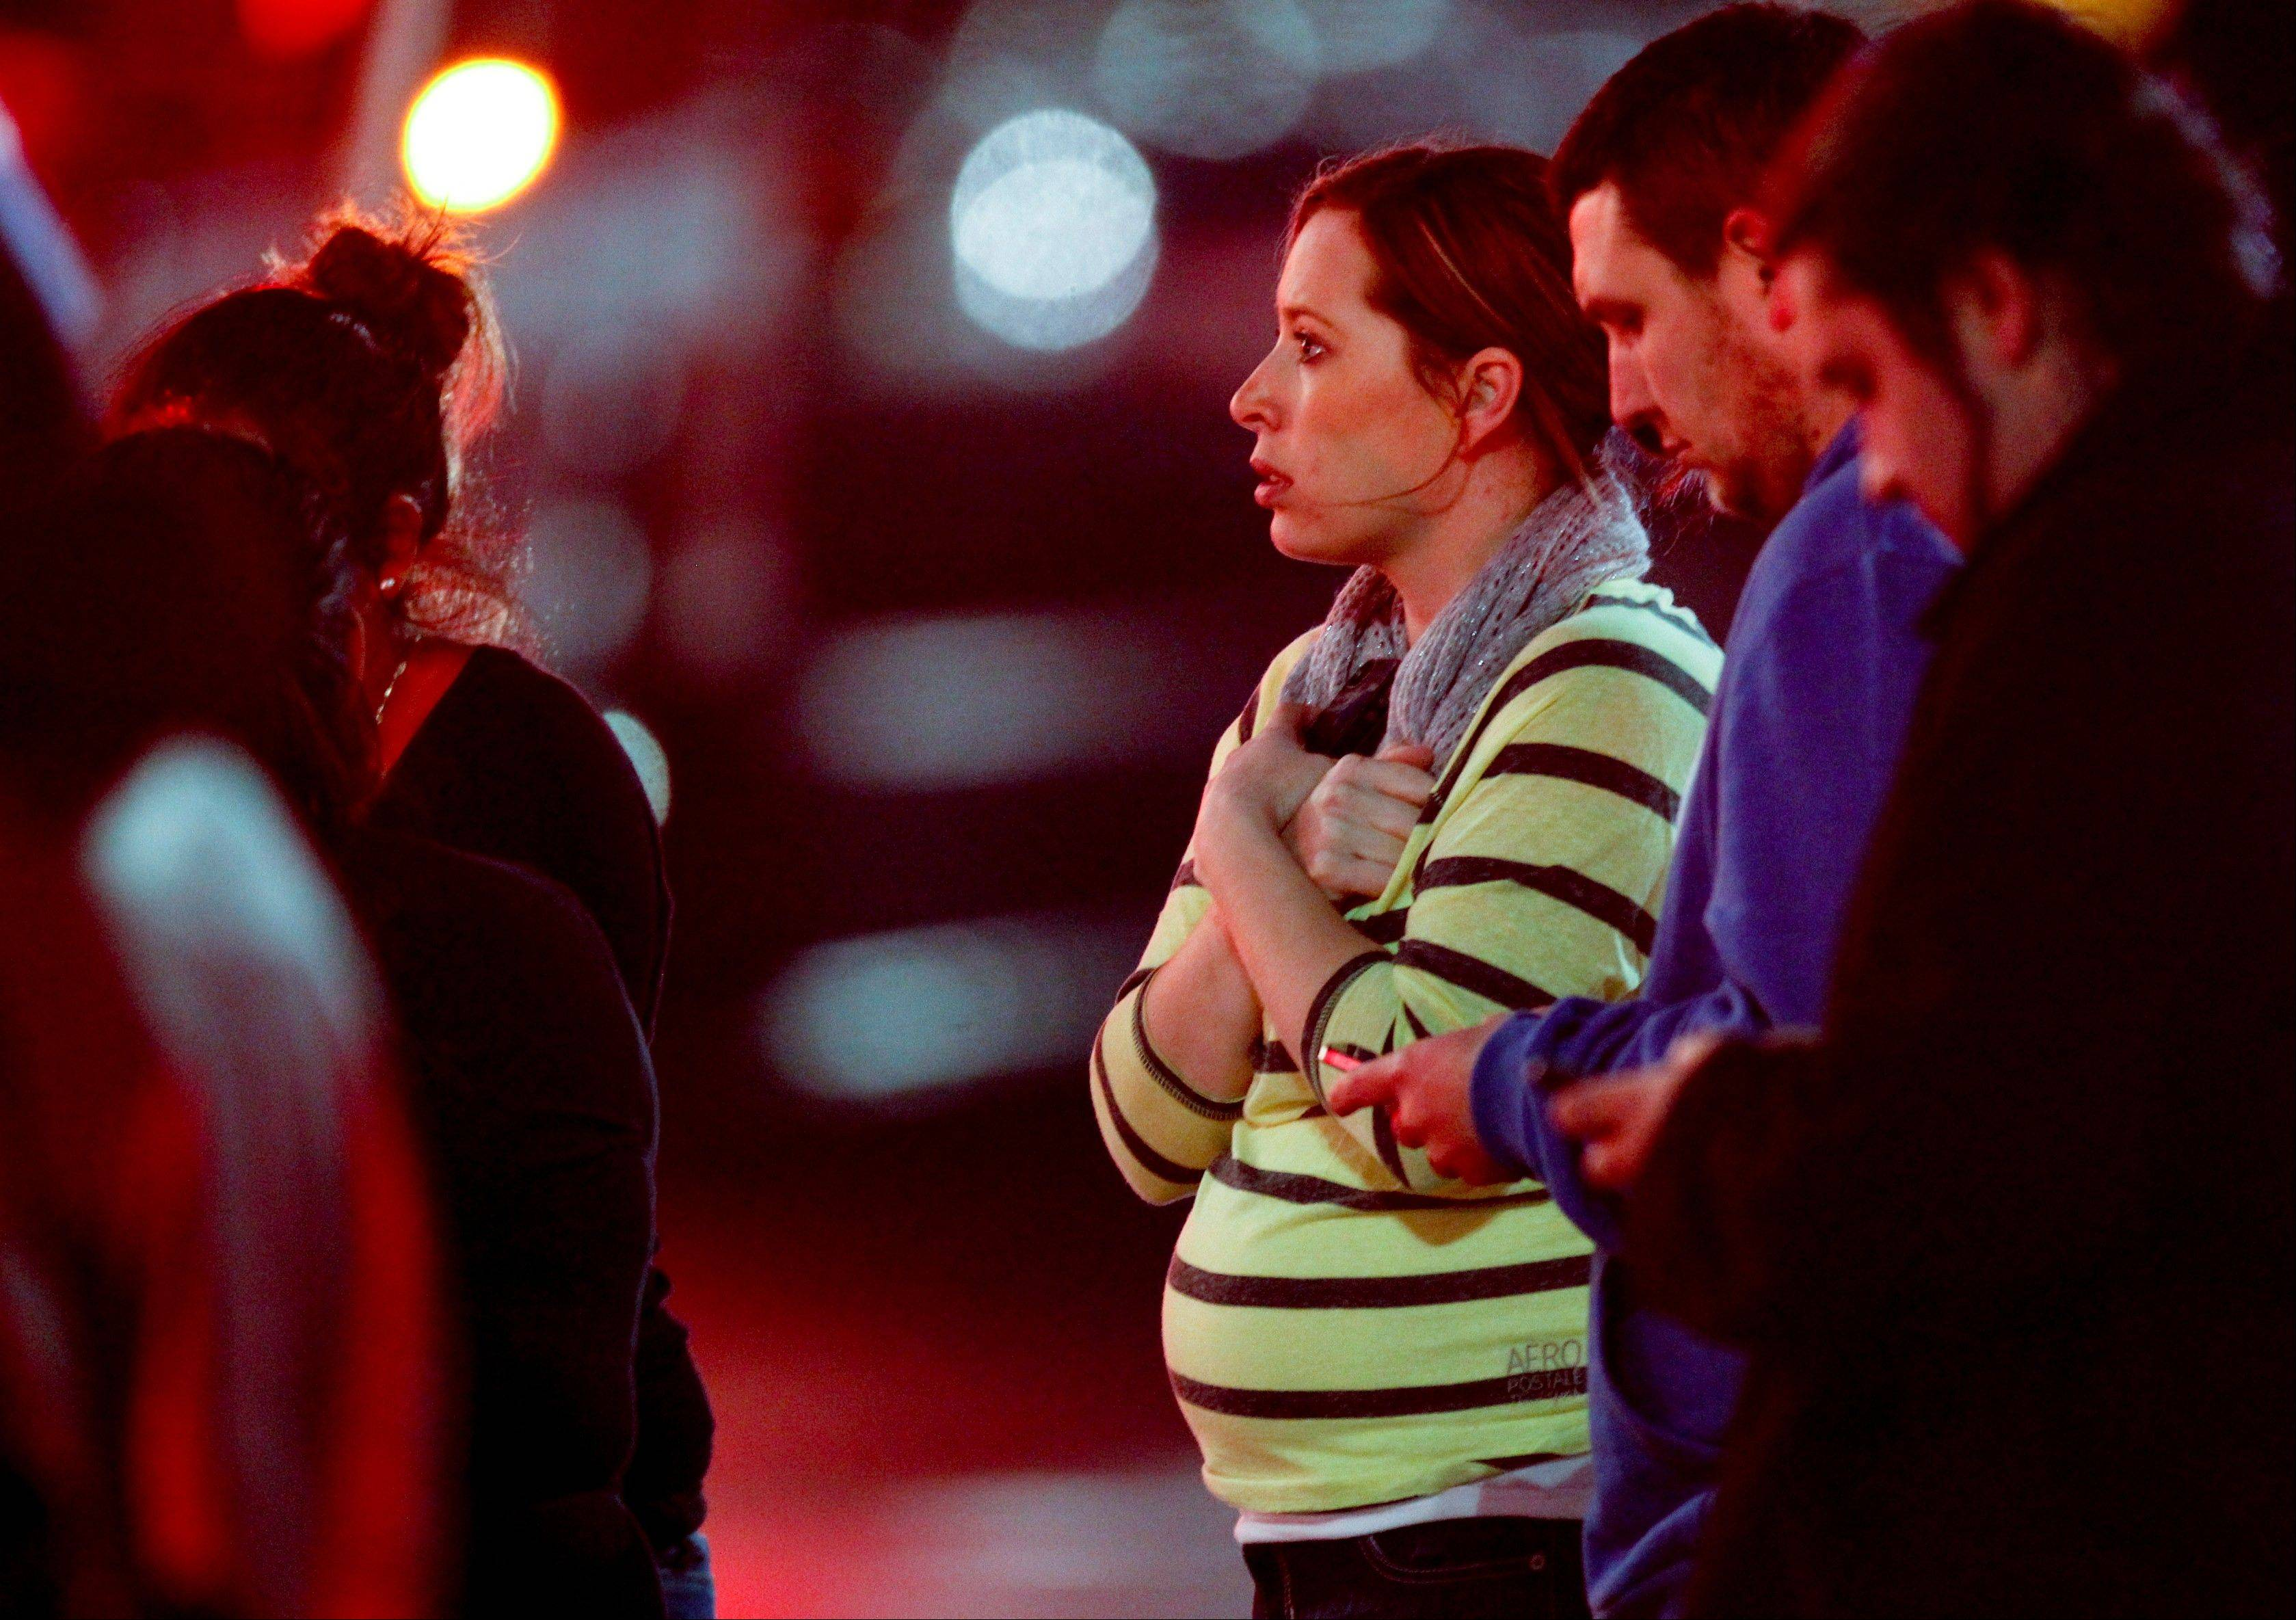 Onlookers observe the scene outside Clackamas Town Center in Portland, Ore., where a shooting occurred Tuesday, Dec. 11, 2012.